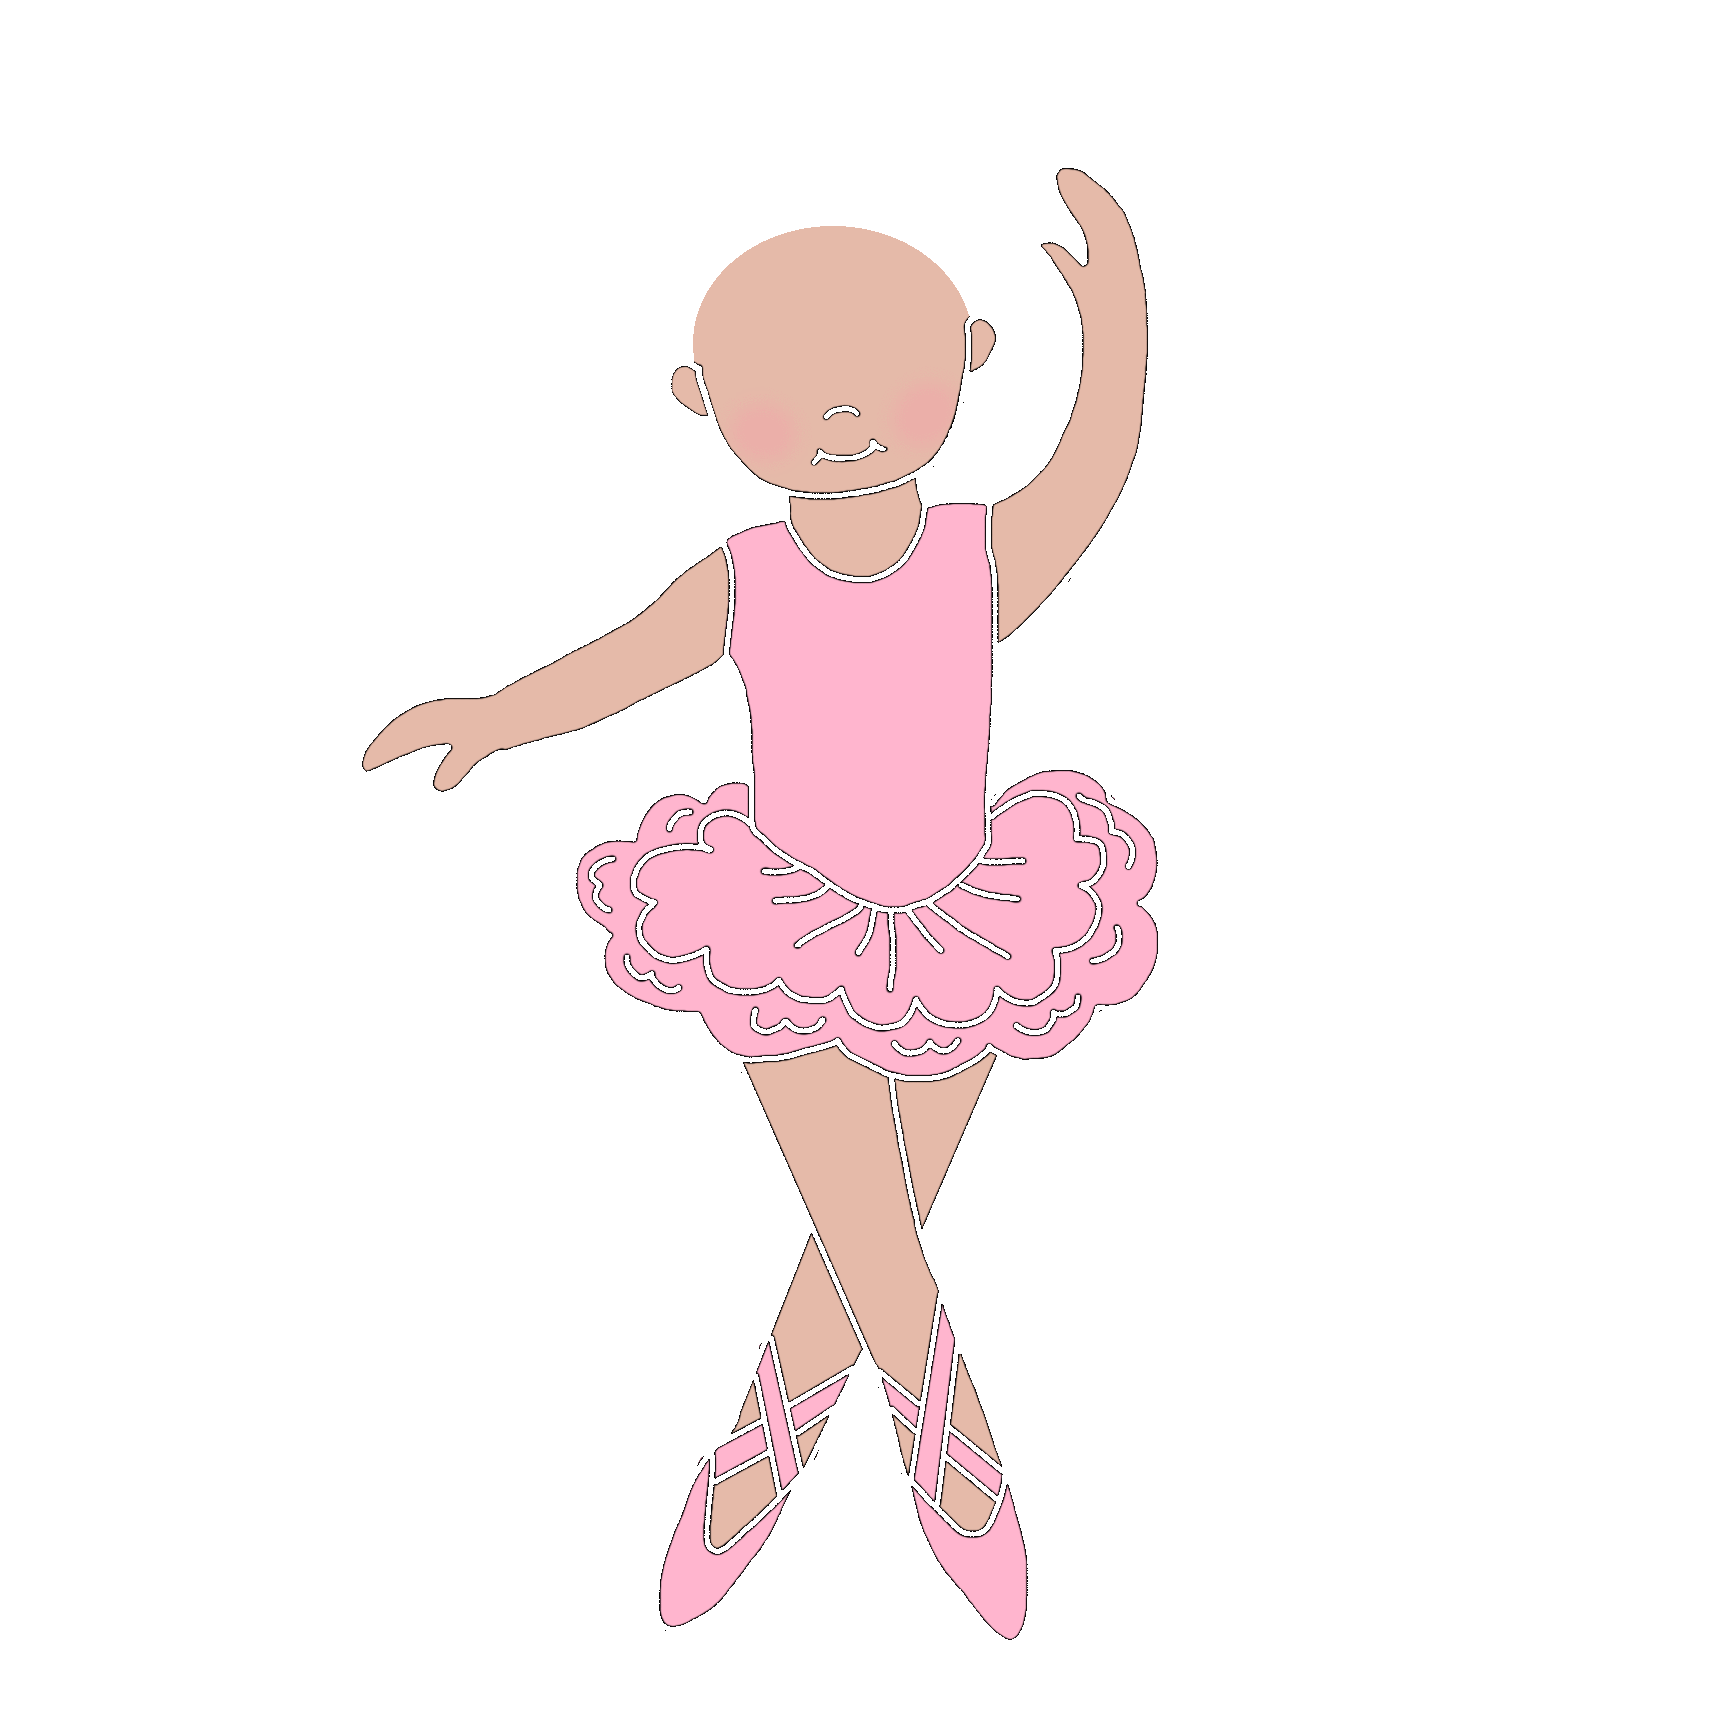 banner freeuse stock Ballerina and thank you. Ballet clipart childrens dance.